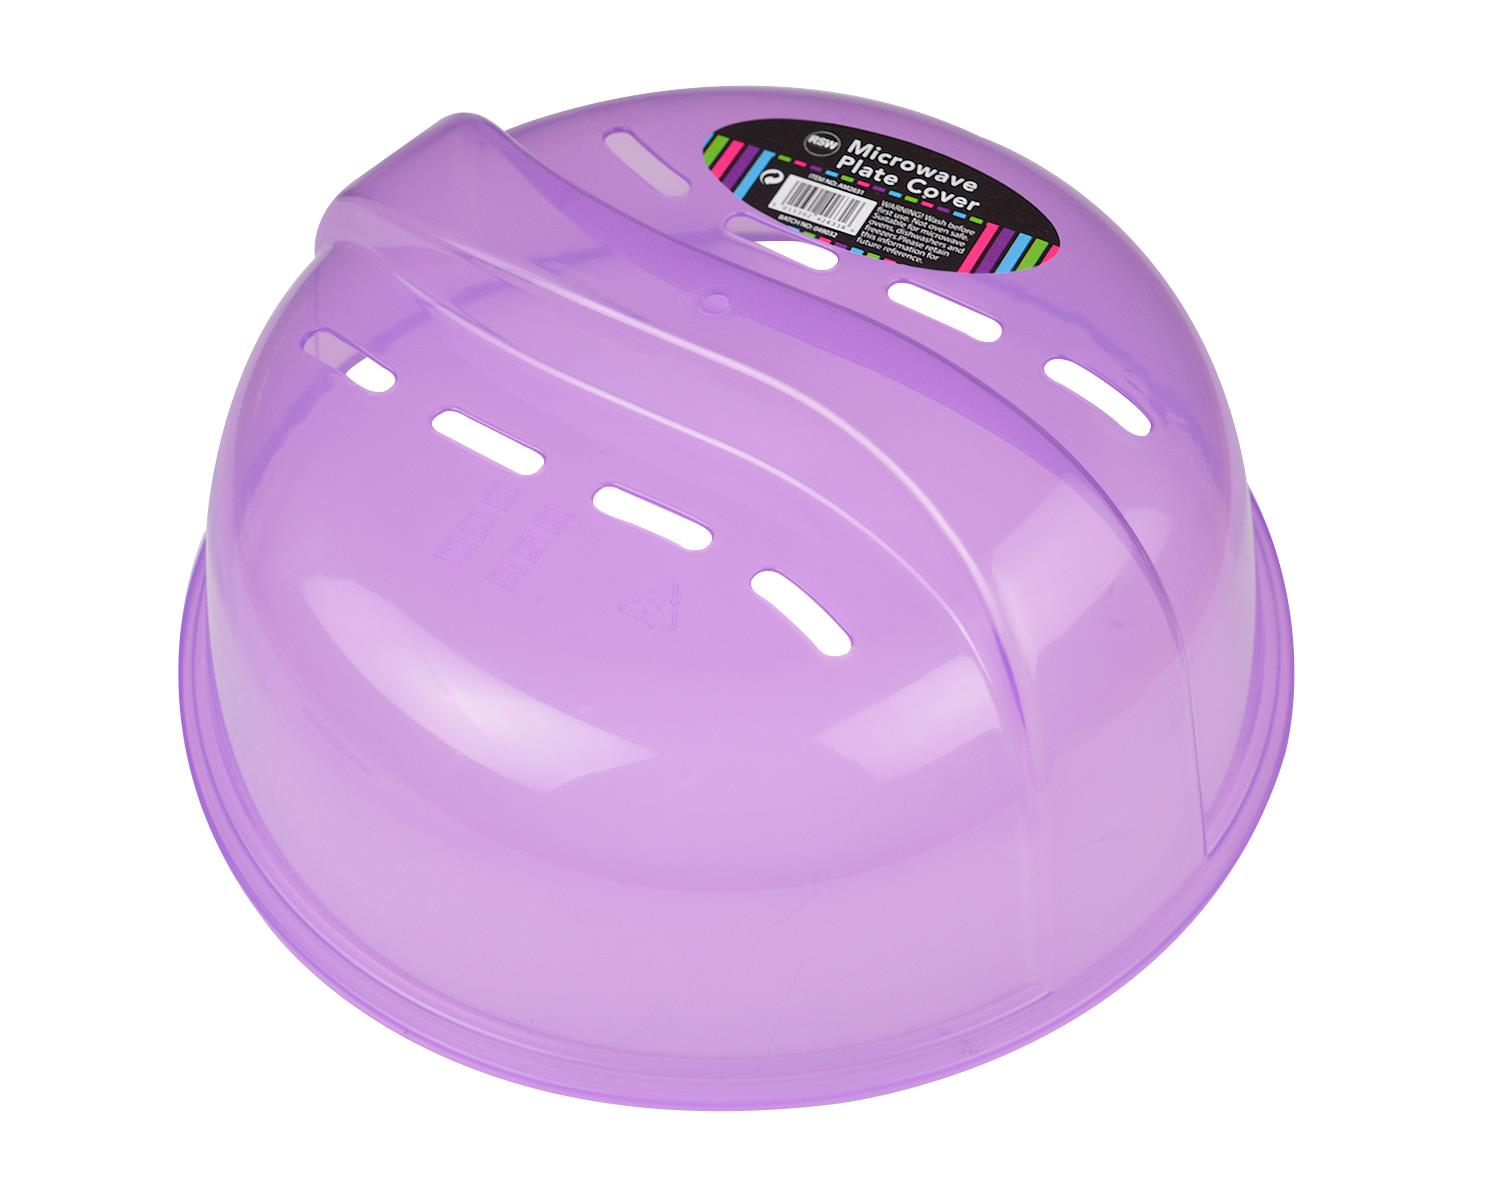 2x Microwave Plate Cover Food Lid Air Vents Handle Kitchen